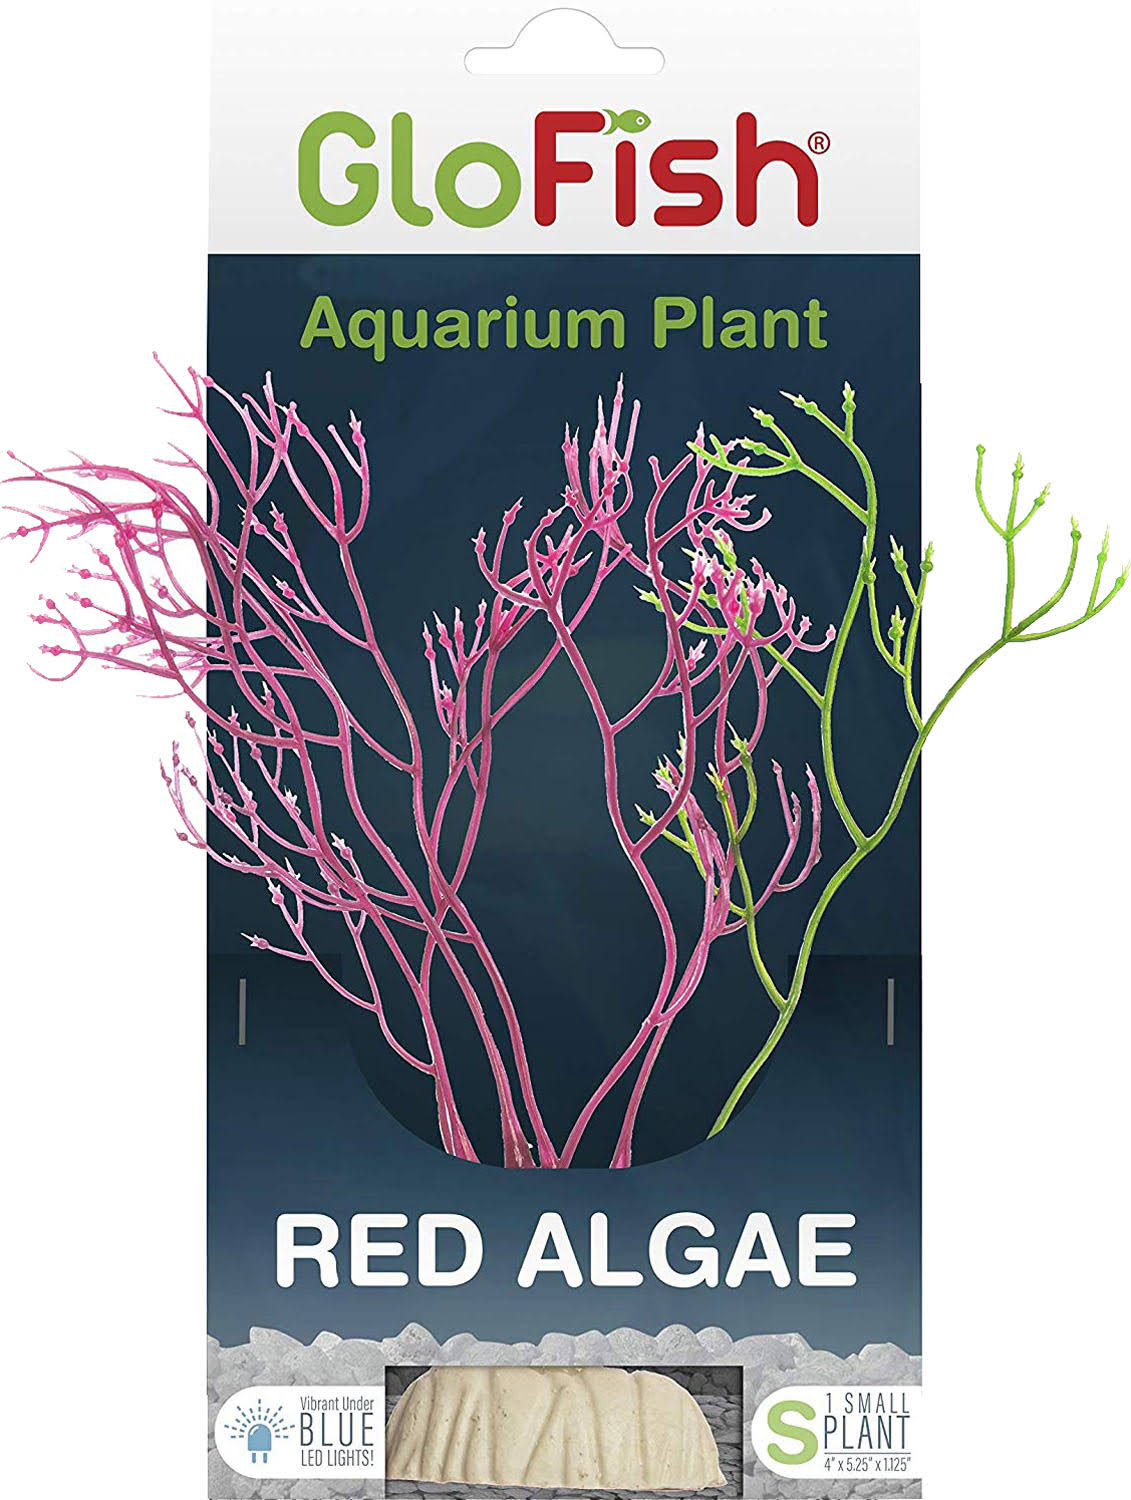 Glofish Red Algae Plant Fluorescent Under Blue LED Light Aquarium Decor, Medium